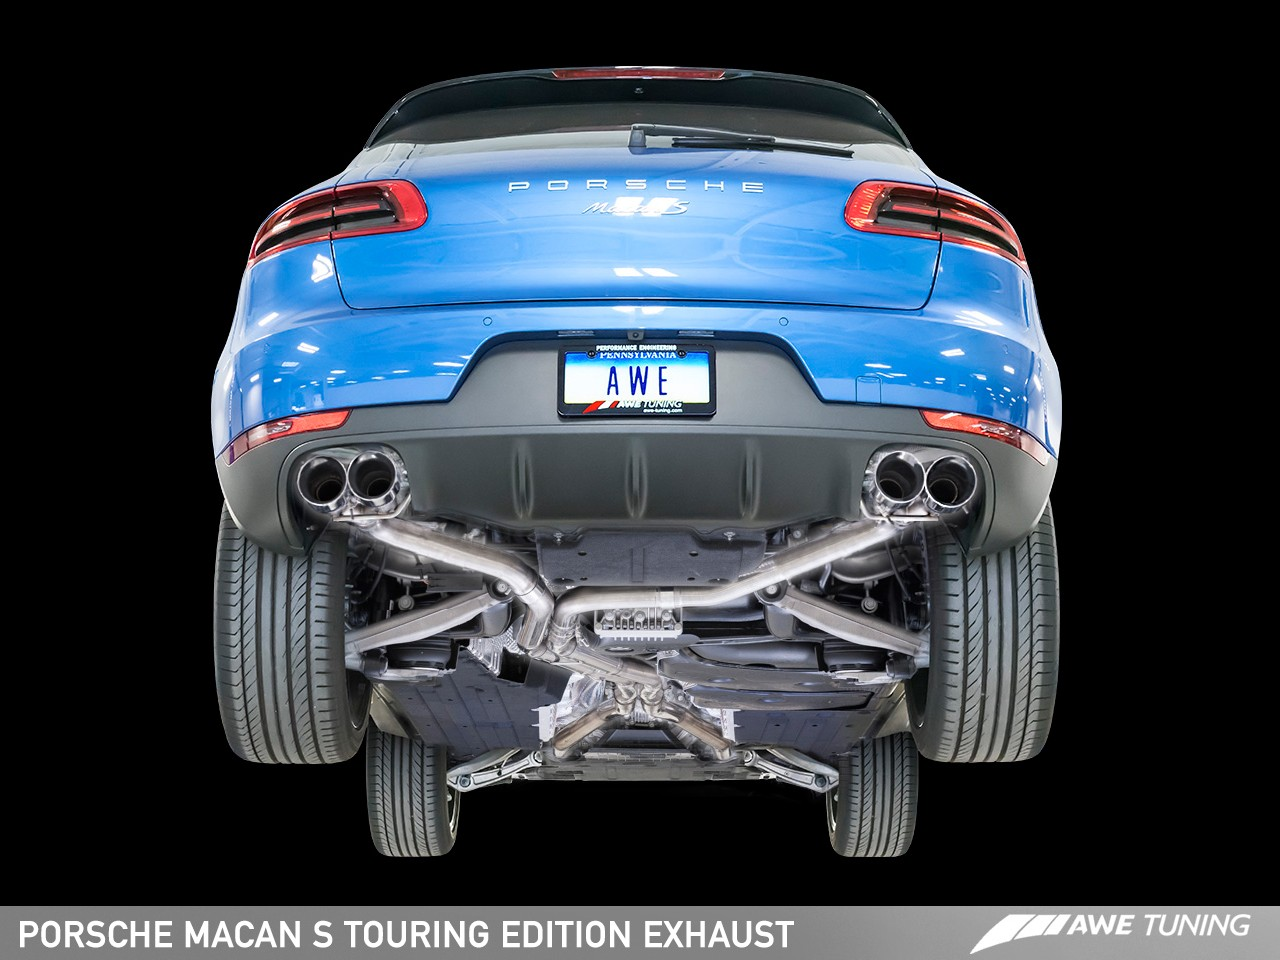 Awe Tuning Porsche Macan S Exhaust Suite Awe Tuning